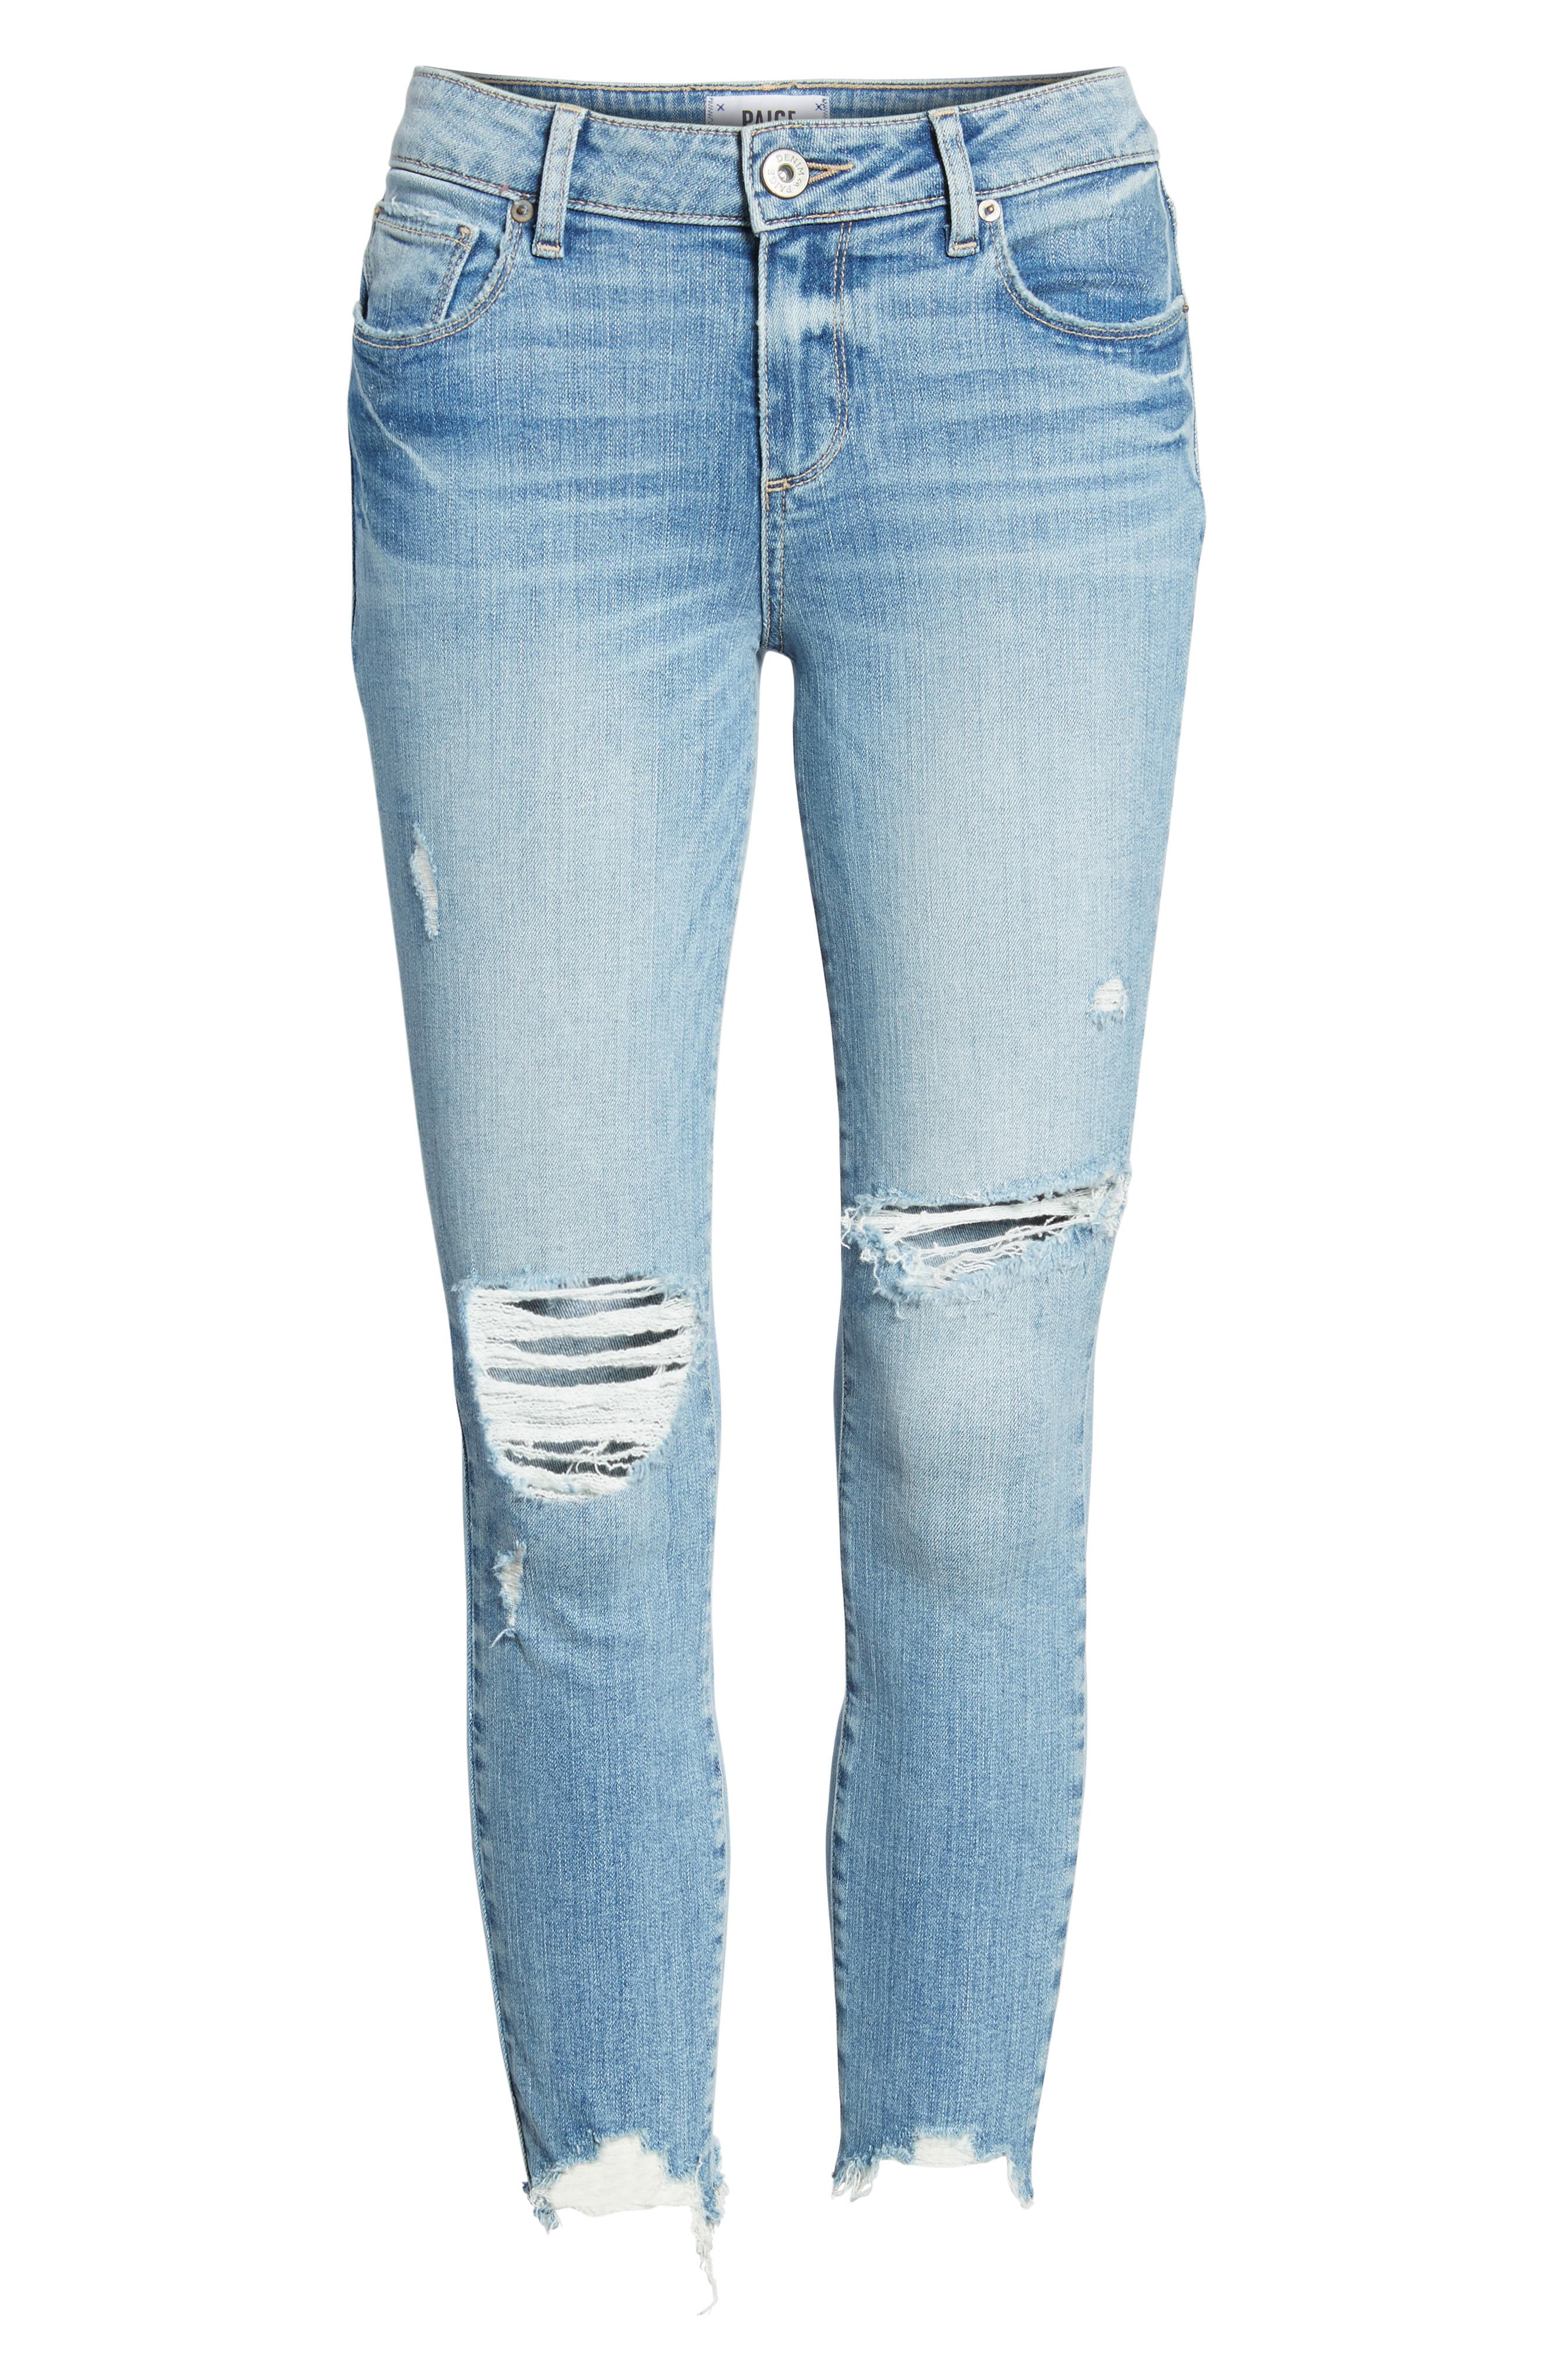 Verdugo Ripped Crop Ultra Skinny Jeans,                             Alternate thumbnail 7, color,                             400